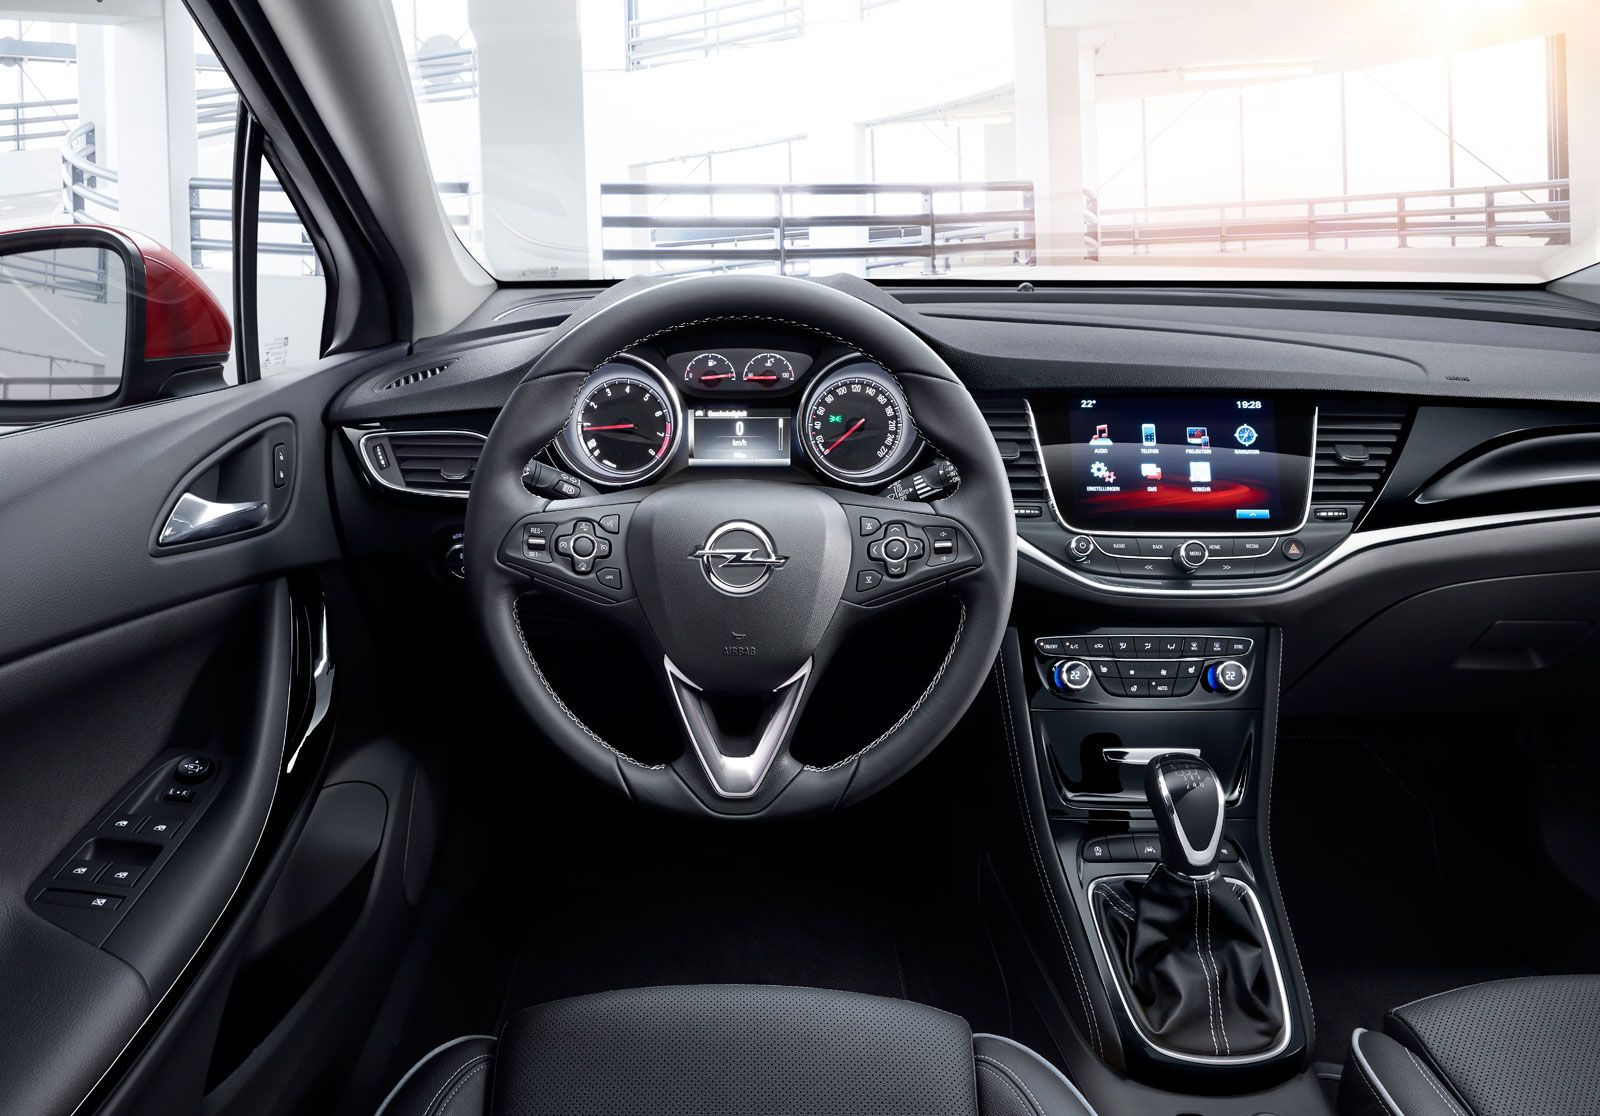 2016 Opel Astra - Interior | Autos | Pinterest